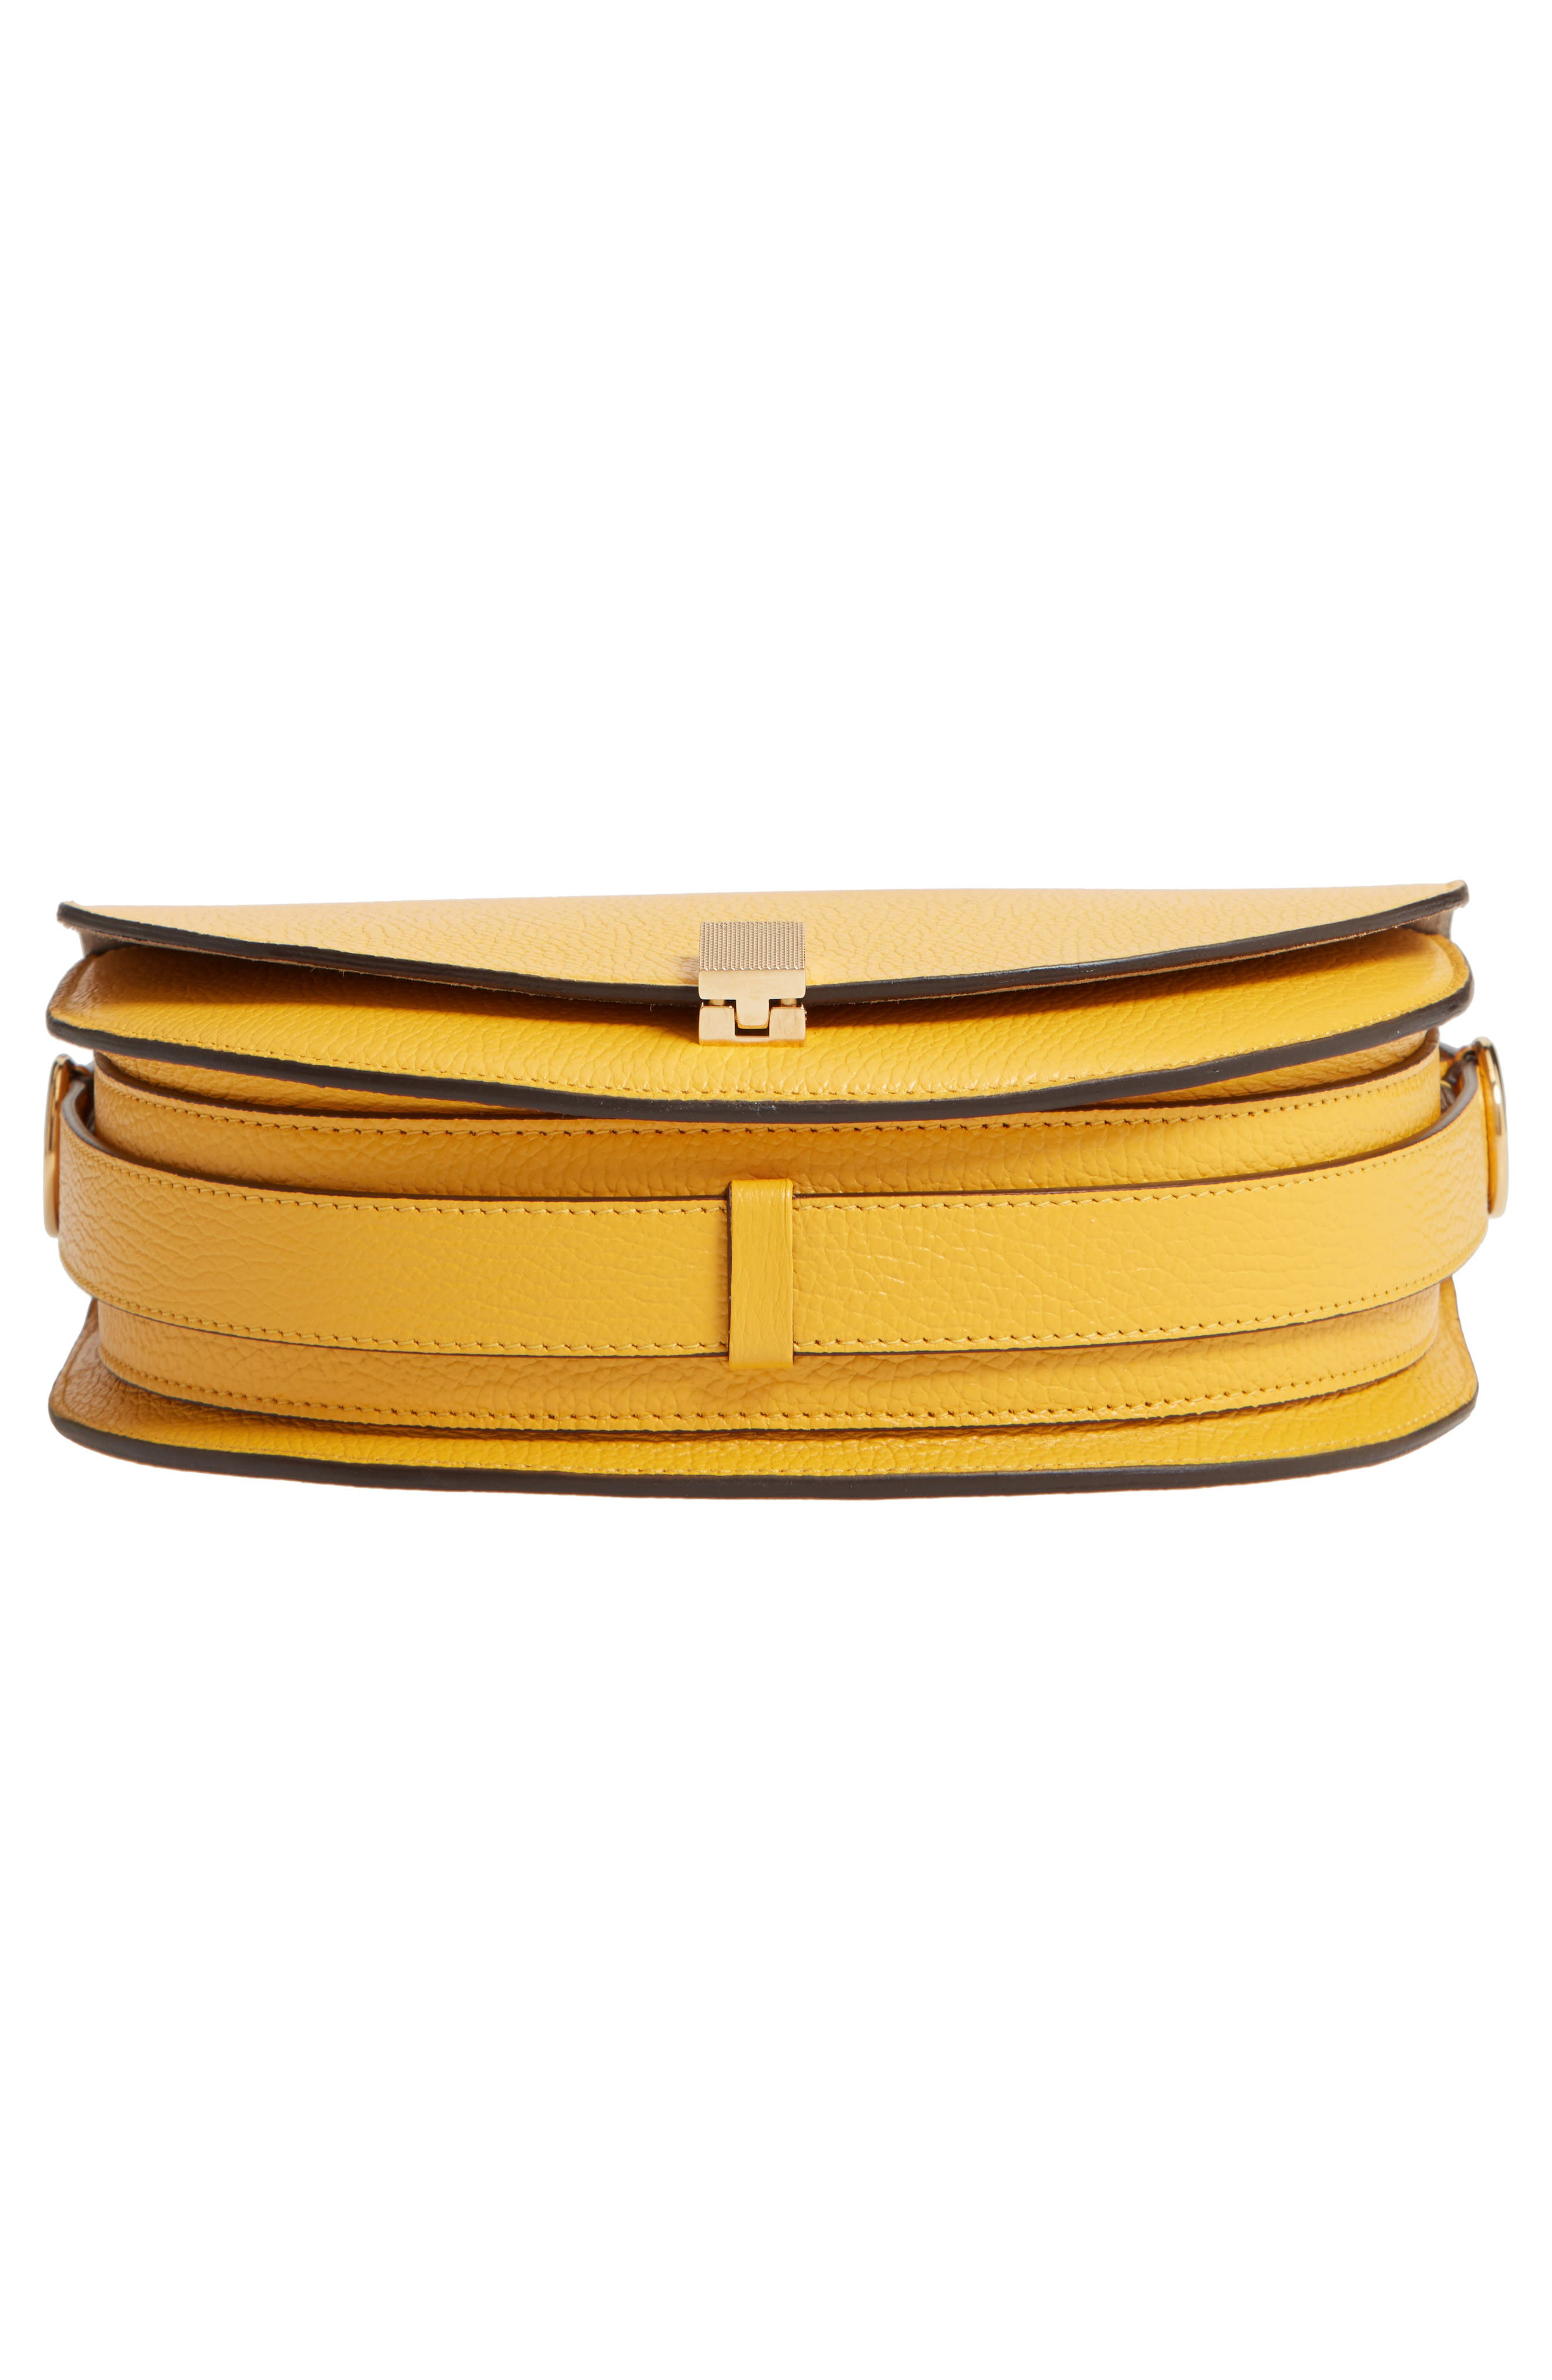 VICTORIA BECKHAM, Half Moon Box Shoulder Bag, Alternate thumbnail 6, color, YELLOW